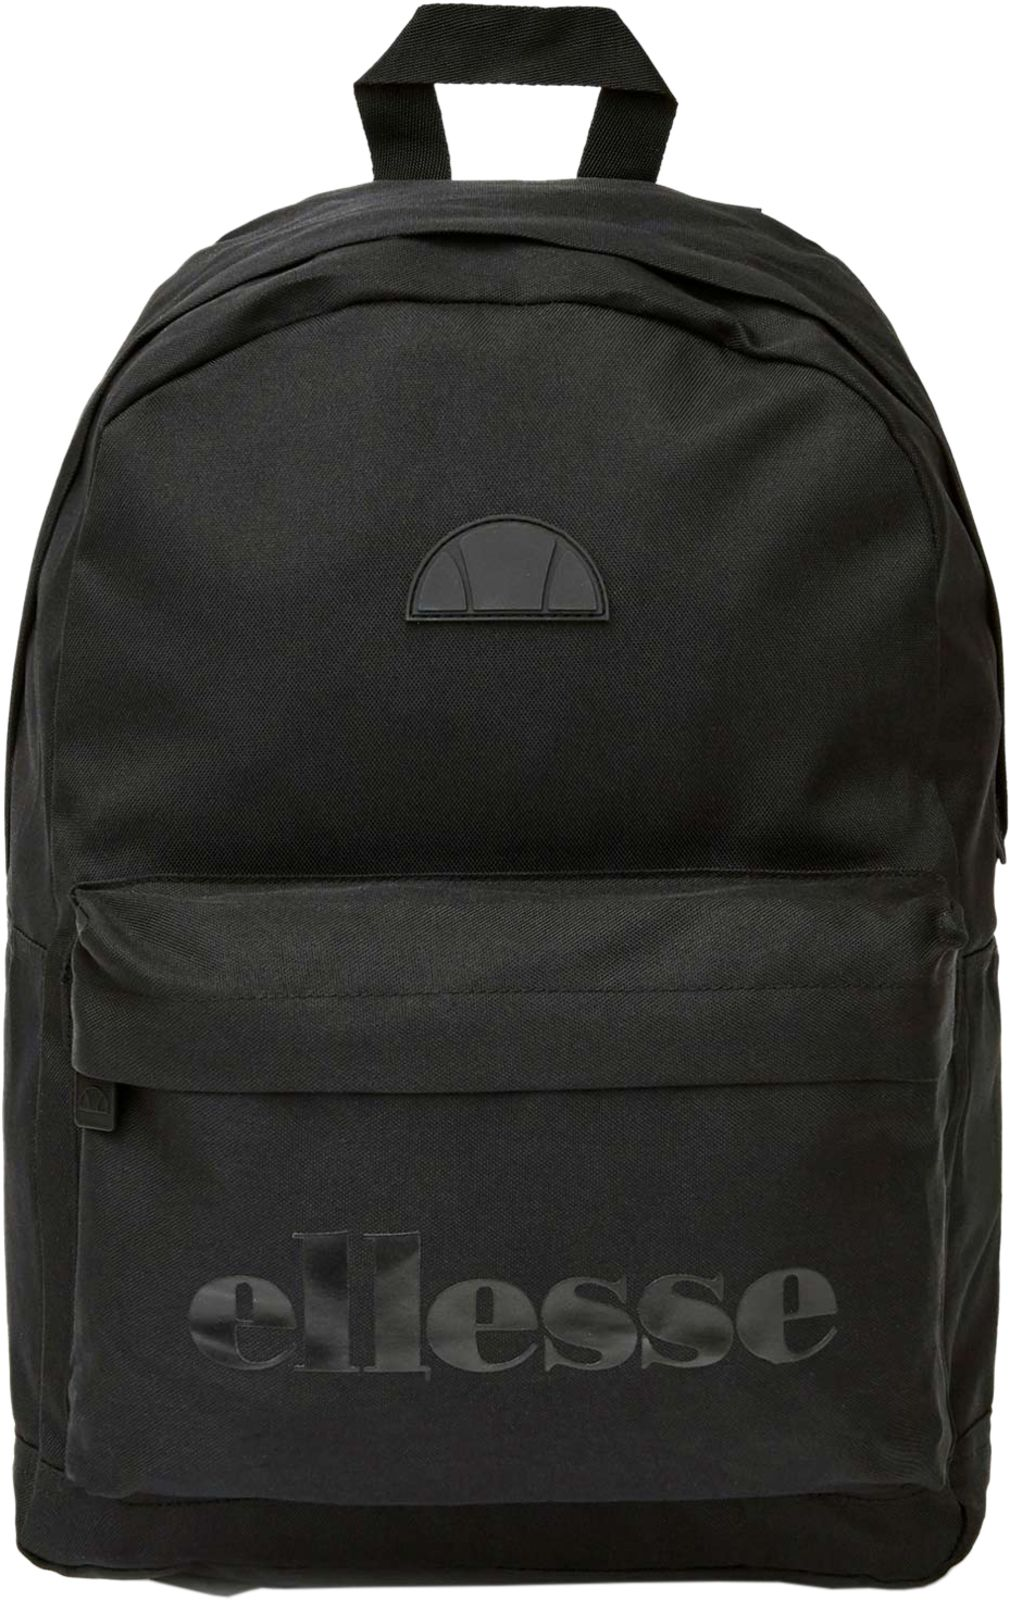 ellesse Heritage Regent Backpack Rucksack School College Sports Bag Black  Mono for sale online  ecdccc20d037e